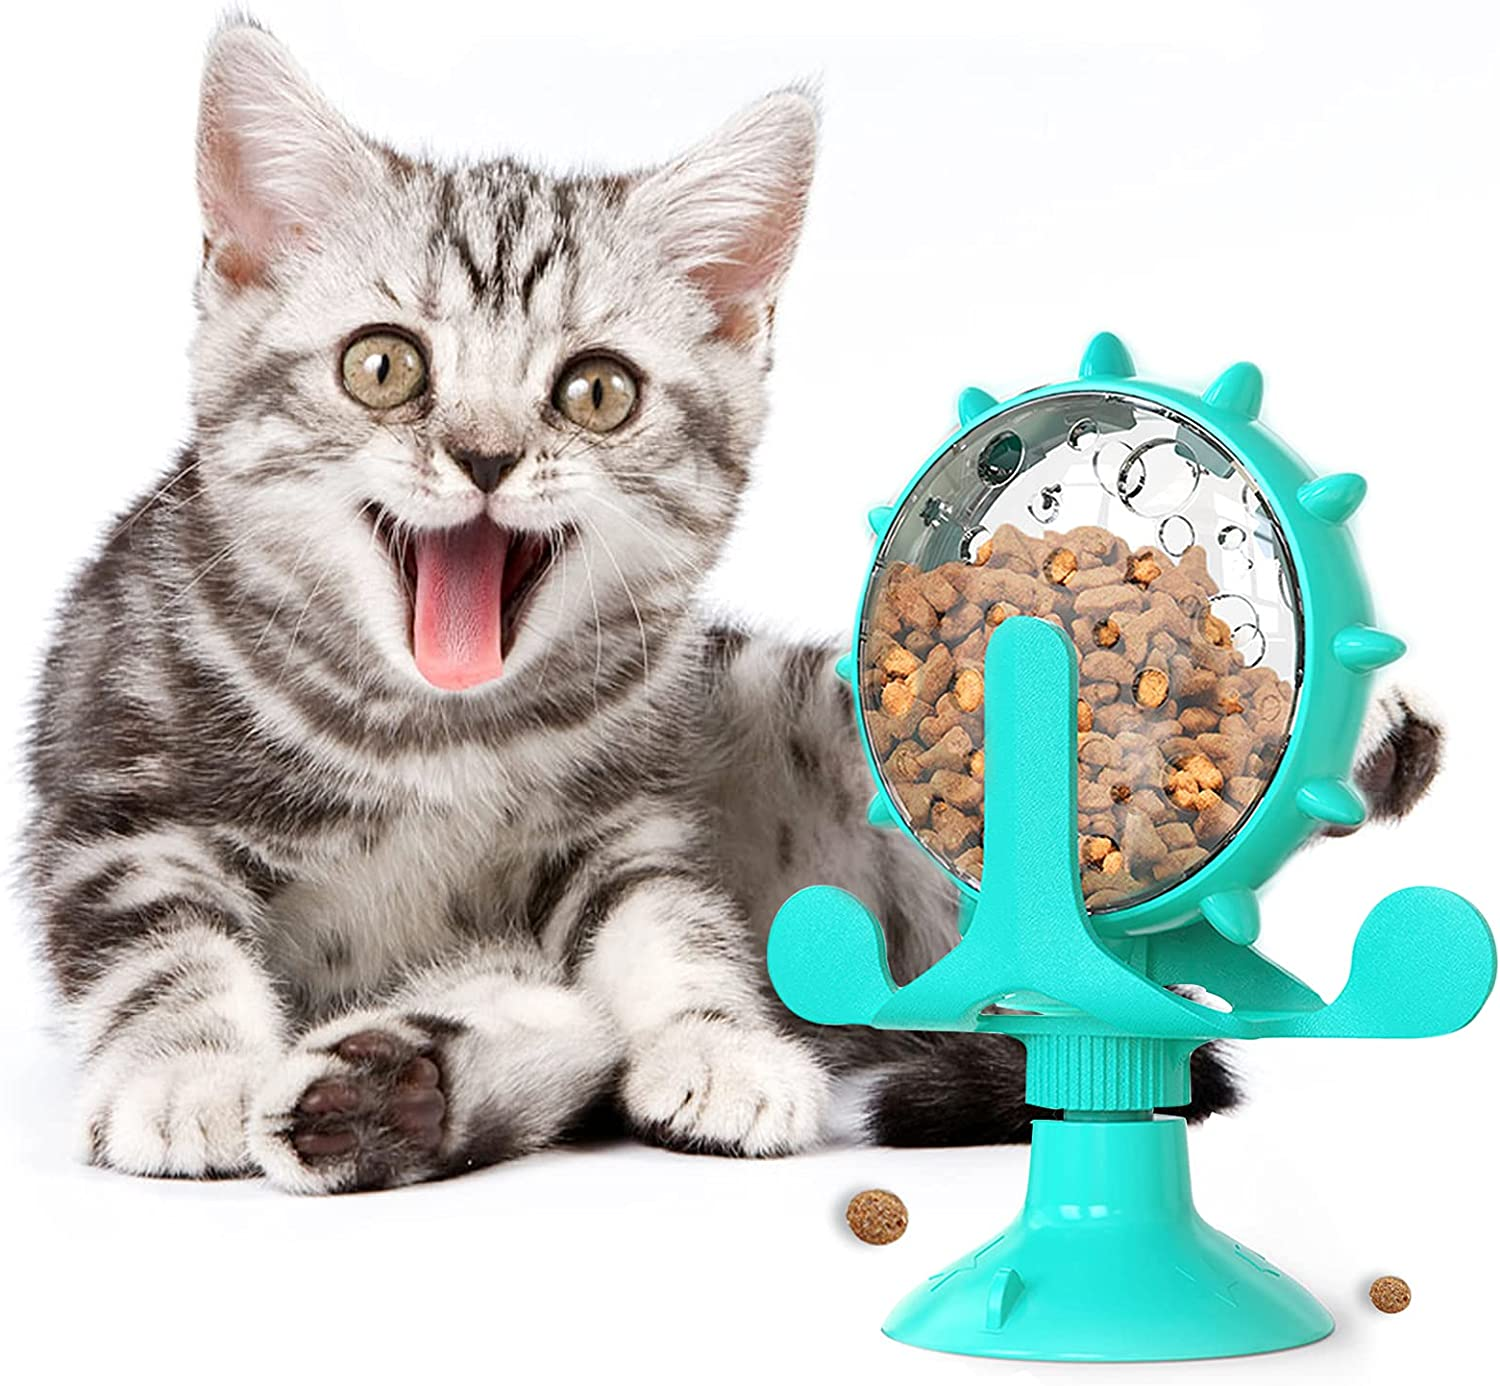 Cat Treat Dispenser Toy,360° Rotating Windmill Interactive Slow Feeder Toy for Cats Enrichment IQ Pet Toy with Suction Cup,Food Leaky Dispenser Toy for Kitten Pet Feeding